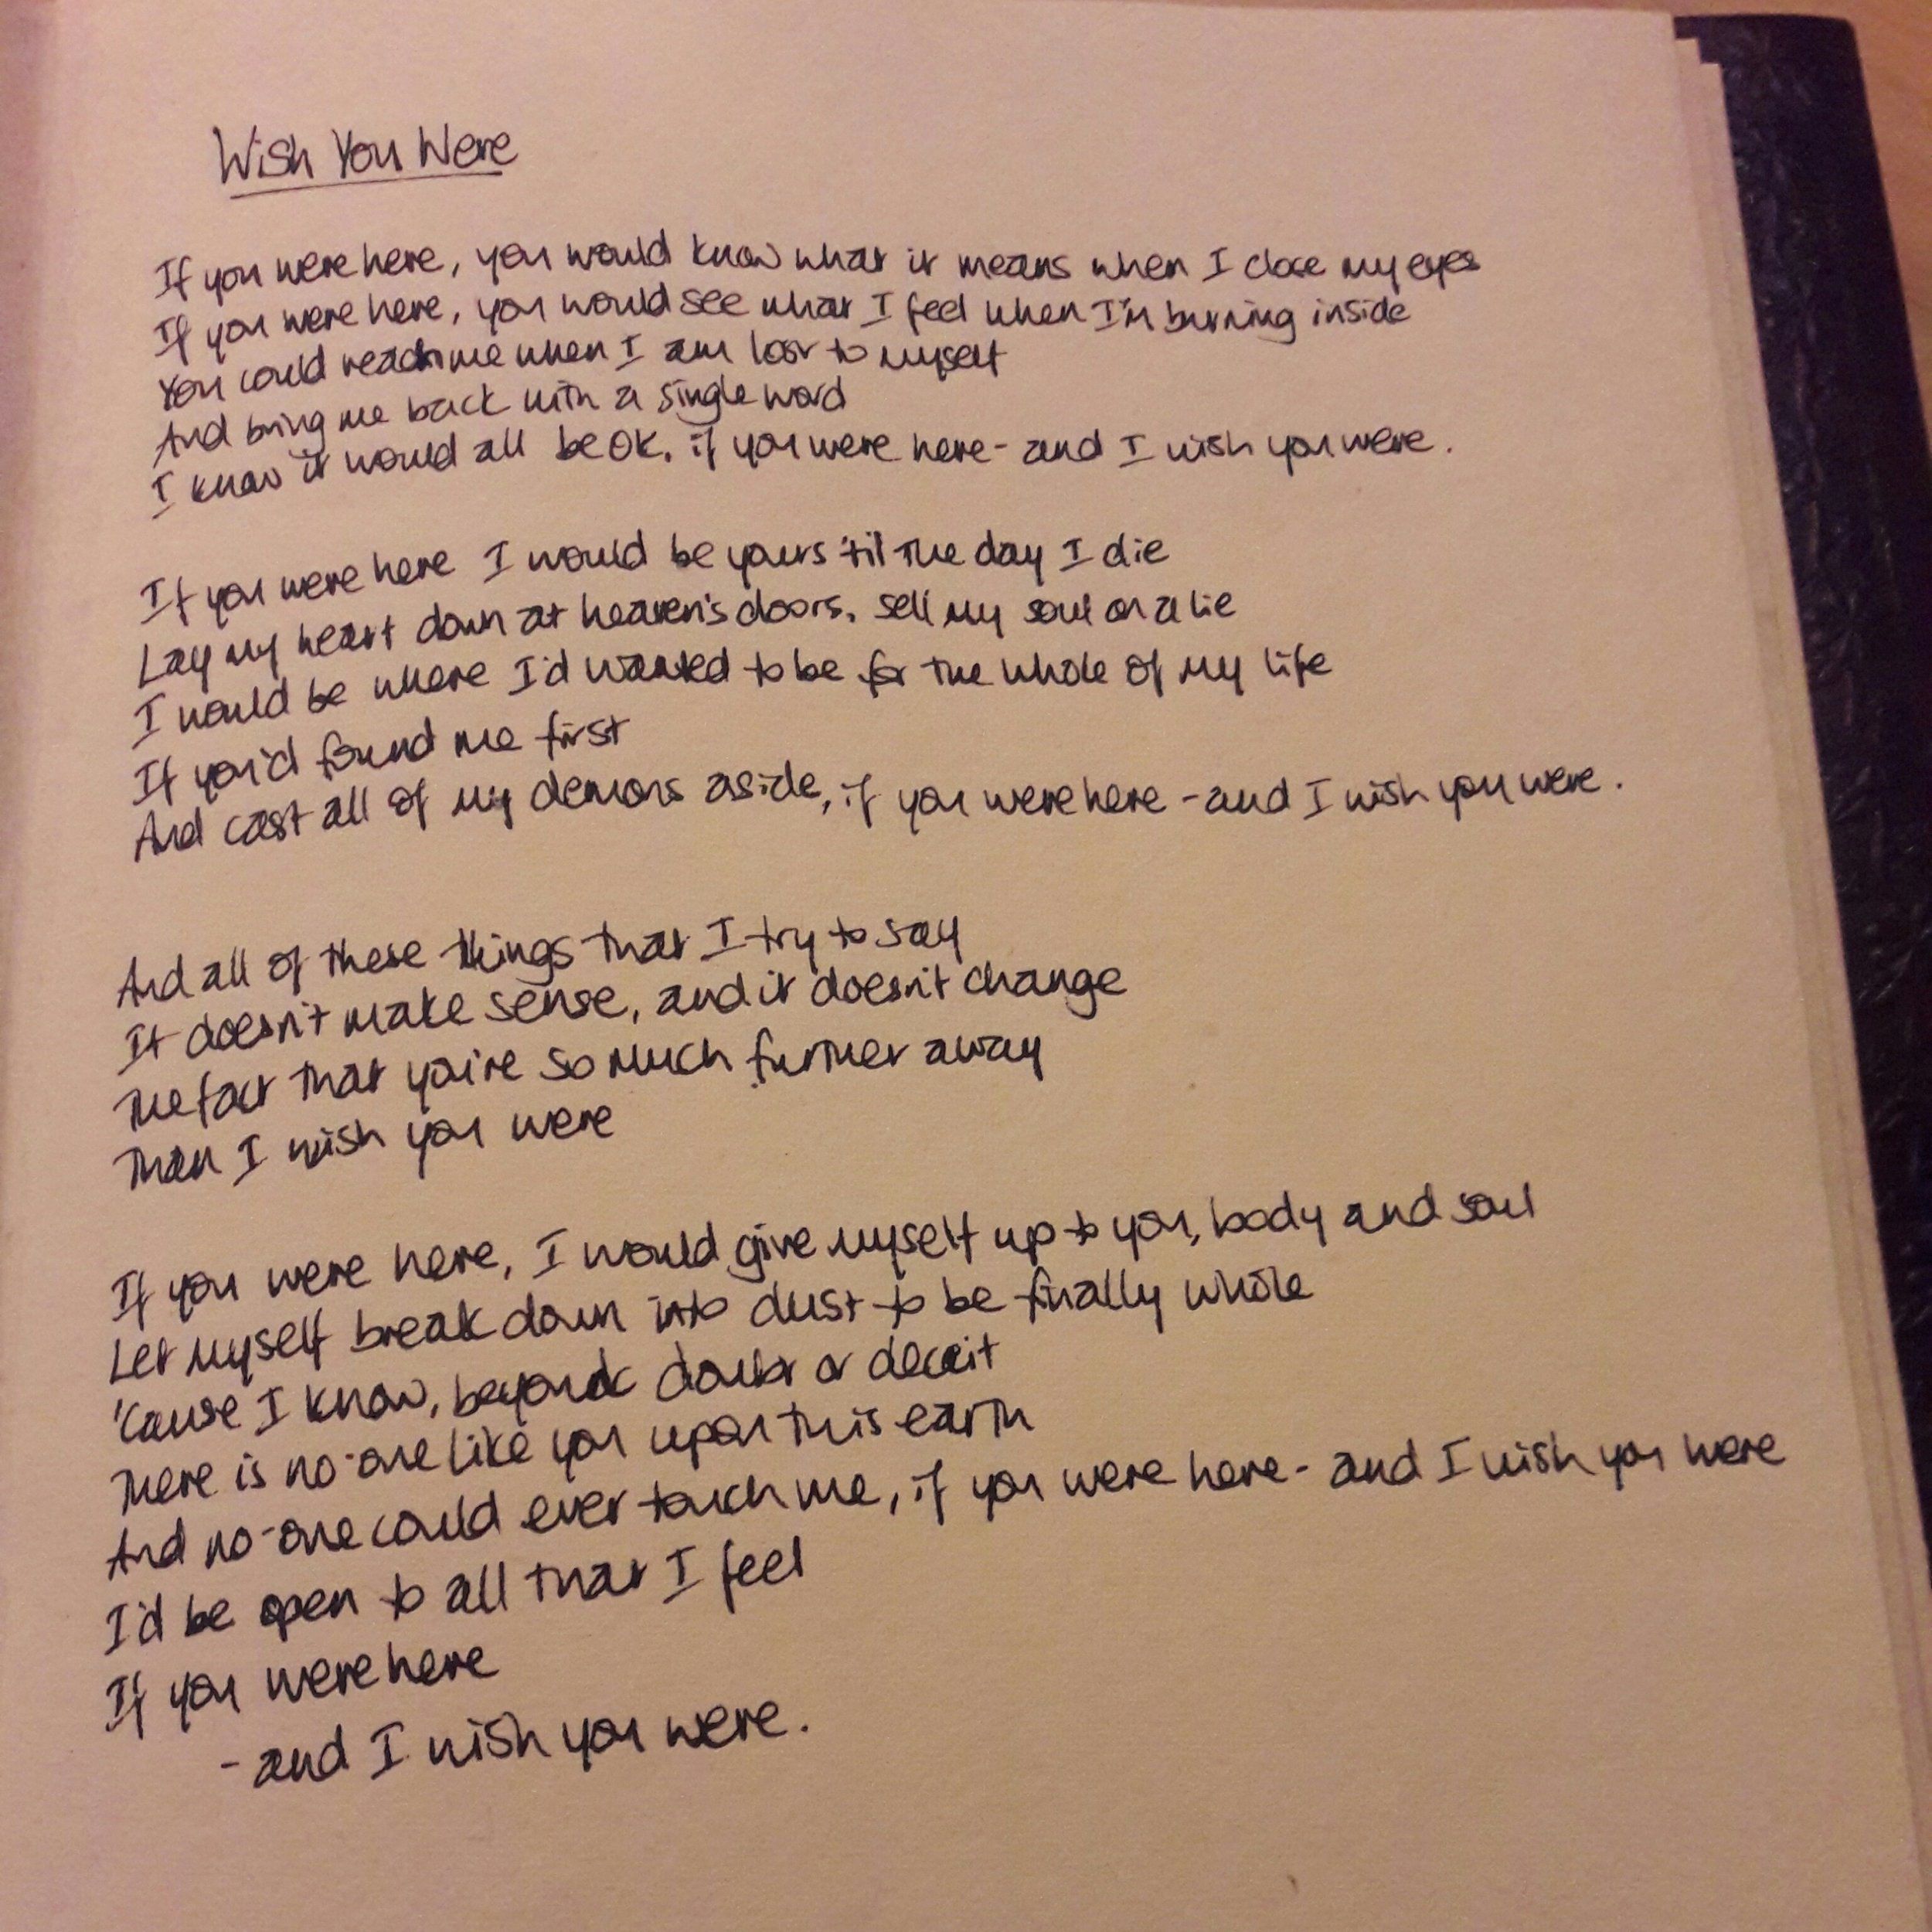 WishYouWereLyrics